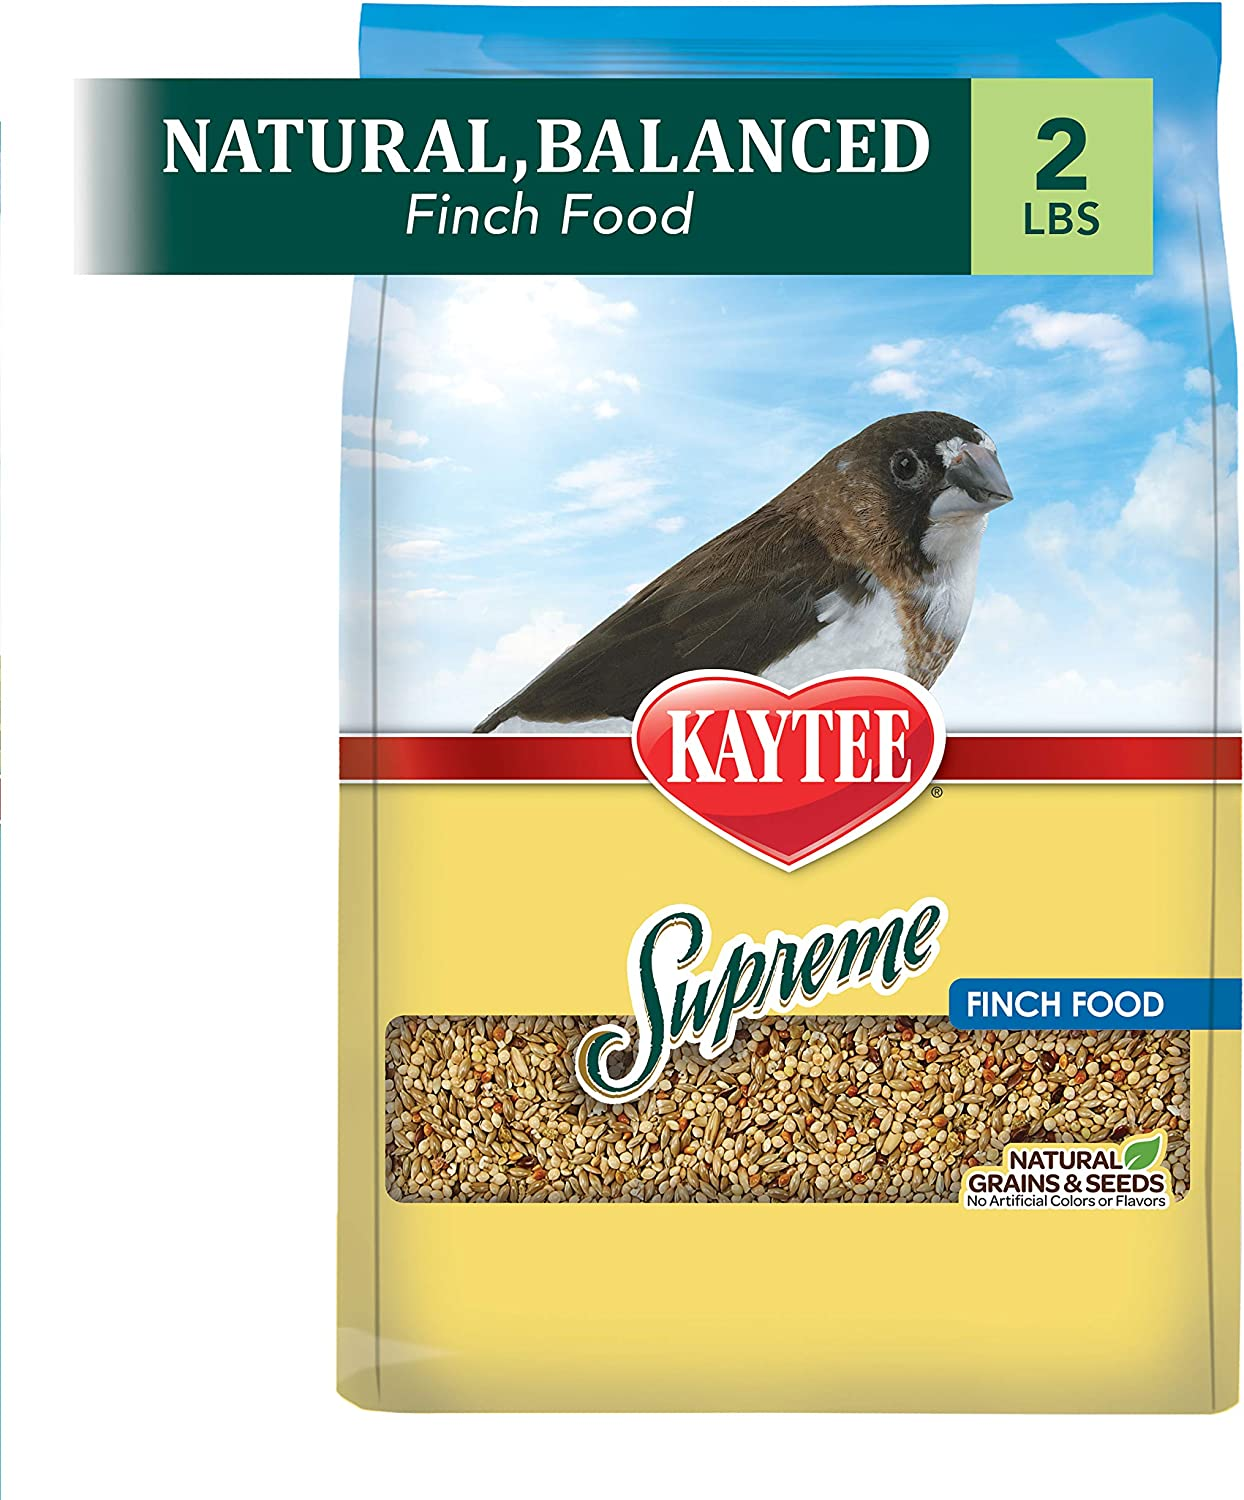 Kaytee Supreme Bird Food For Finches, 2-Lb Bag